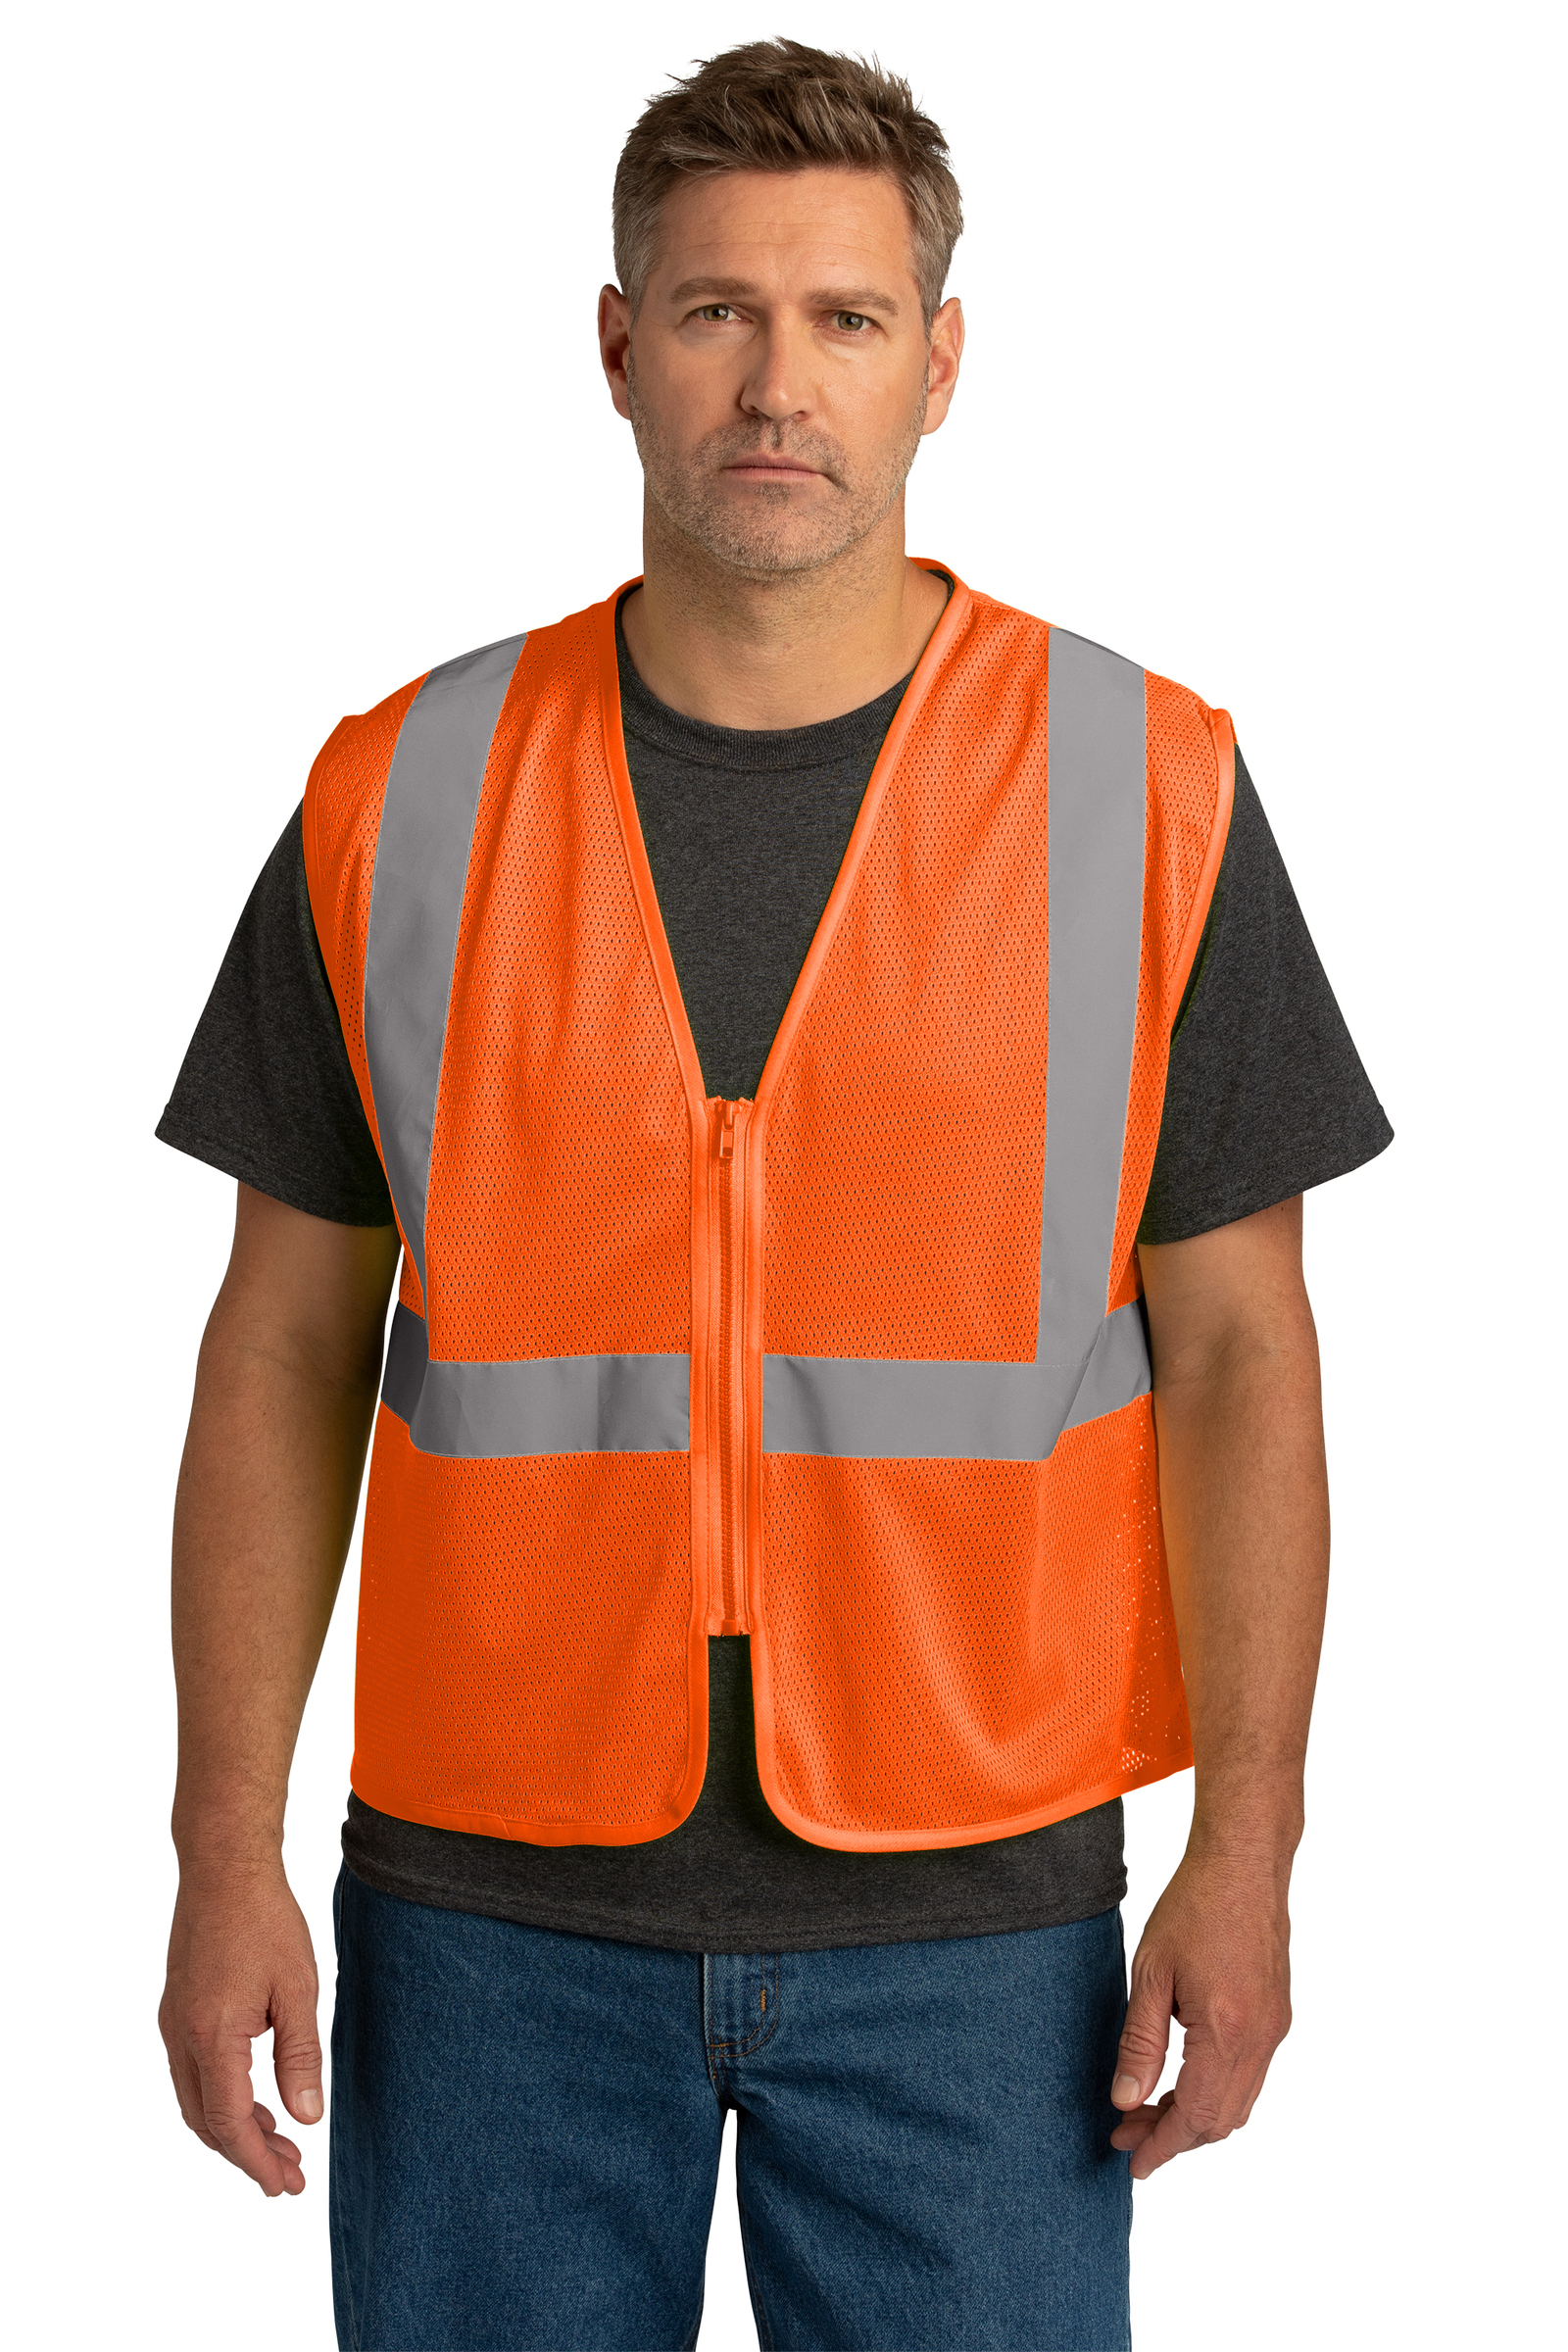 CornerStone Embroidered ANSI 107 Class 2 Economy Mesh Zippered Vest